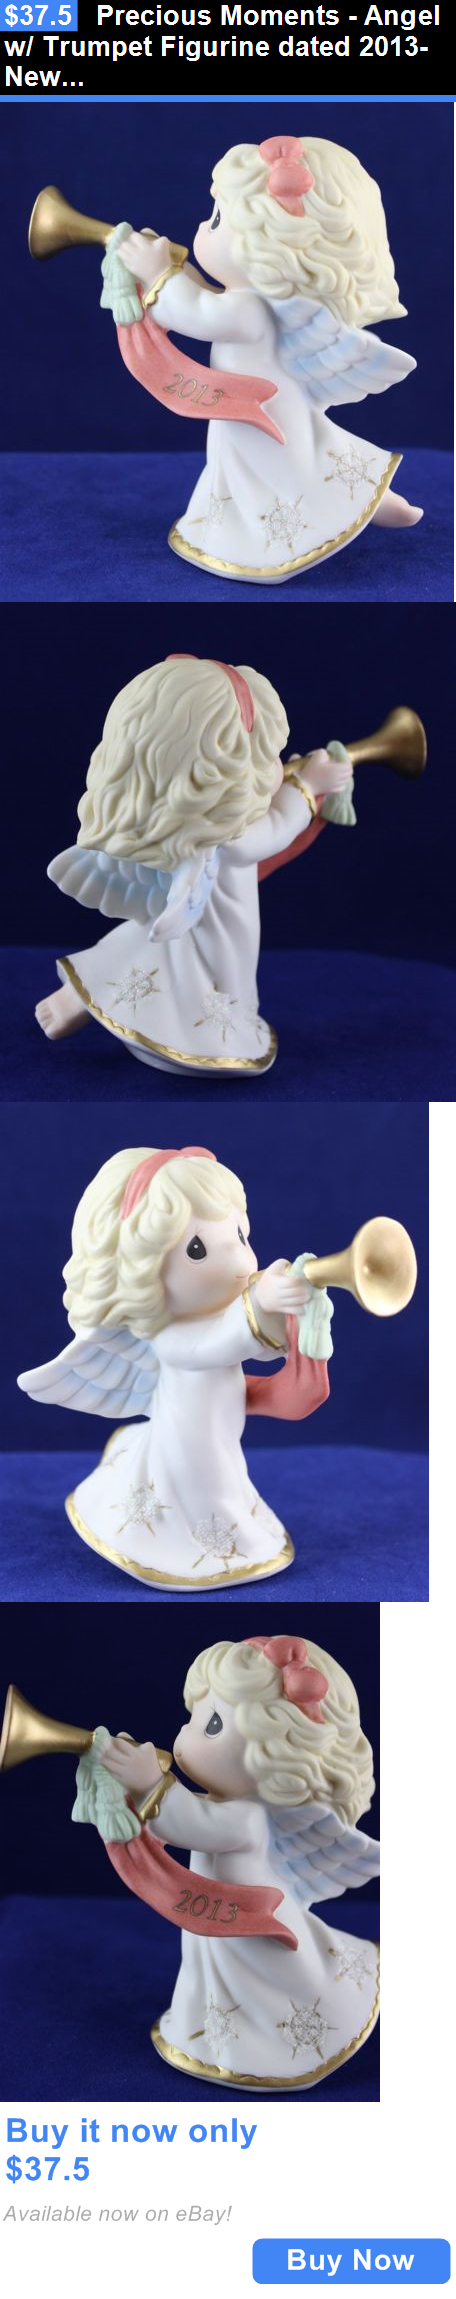 Cherished Teddies Christmas: Precious Moments - Angel W/ Trumpet Figurine Dated 2013- New In Box BUY IT NOW ONLY: $37.5